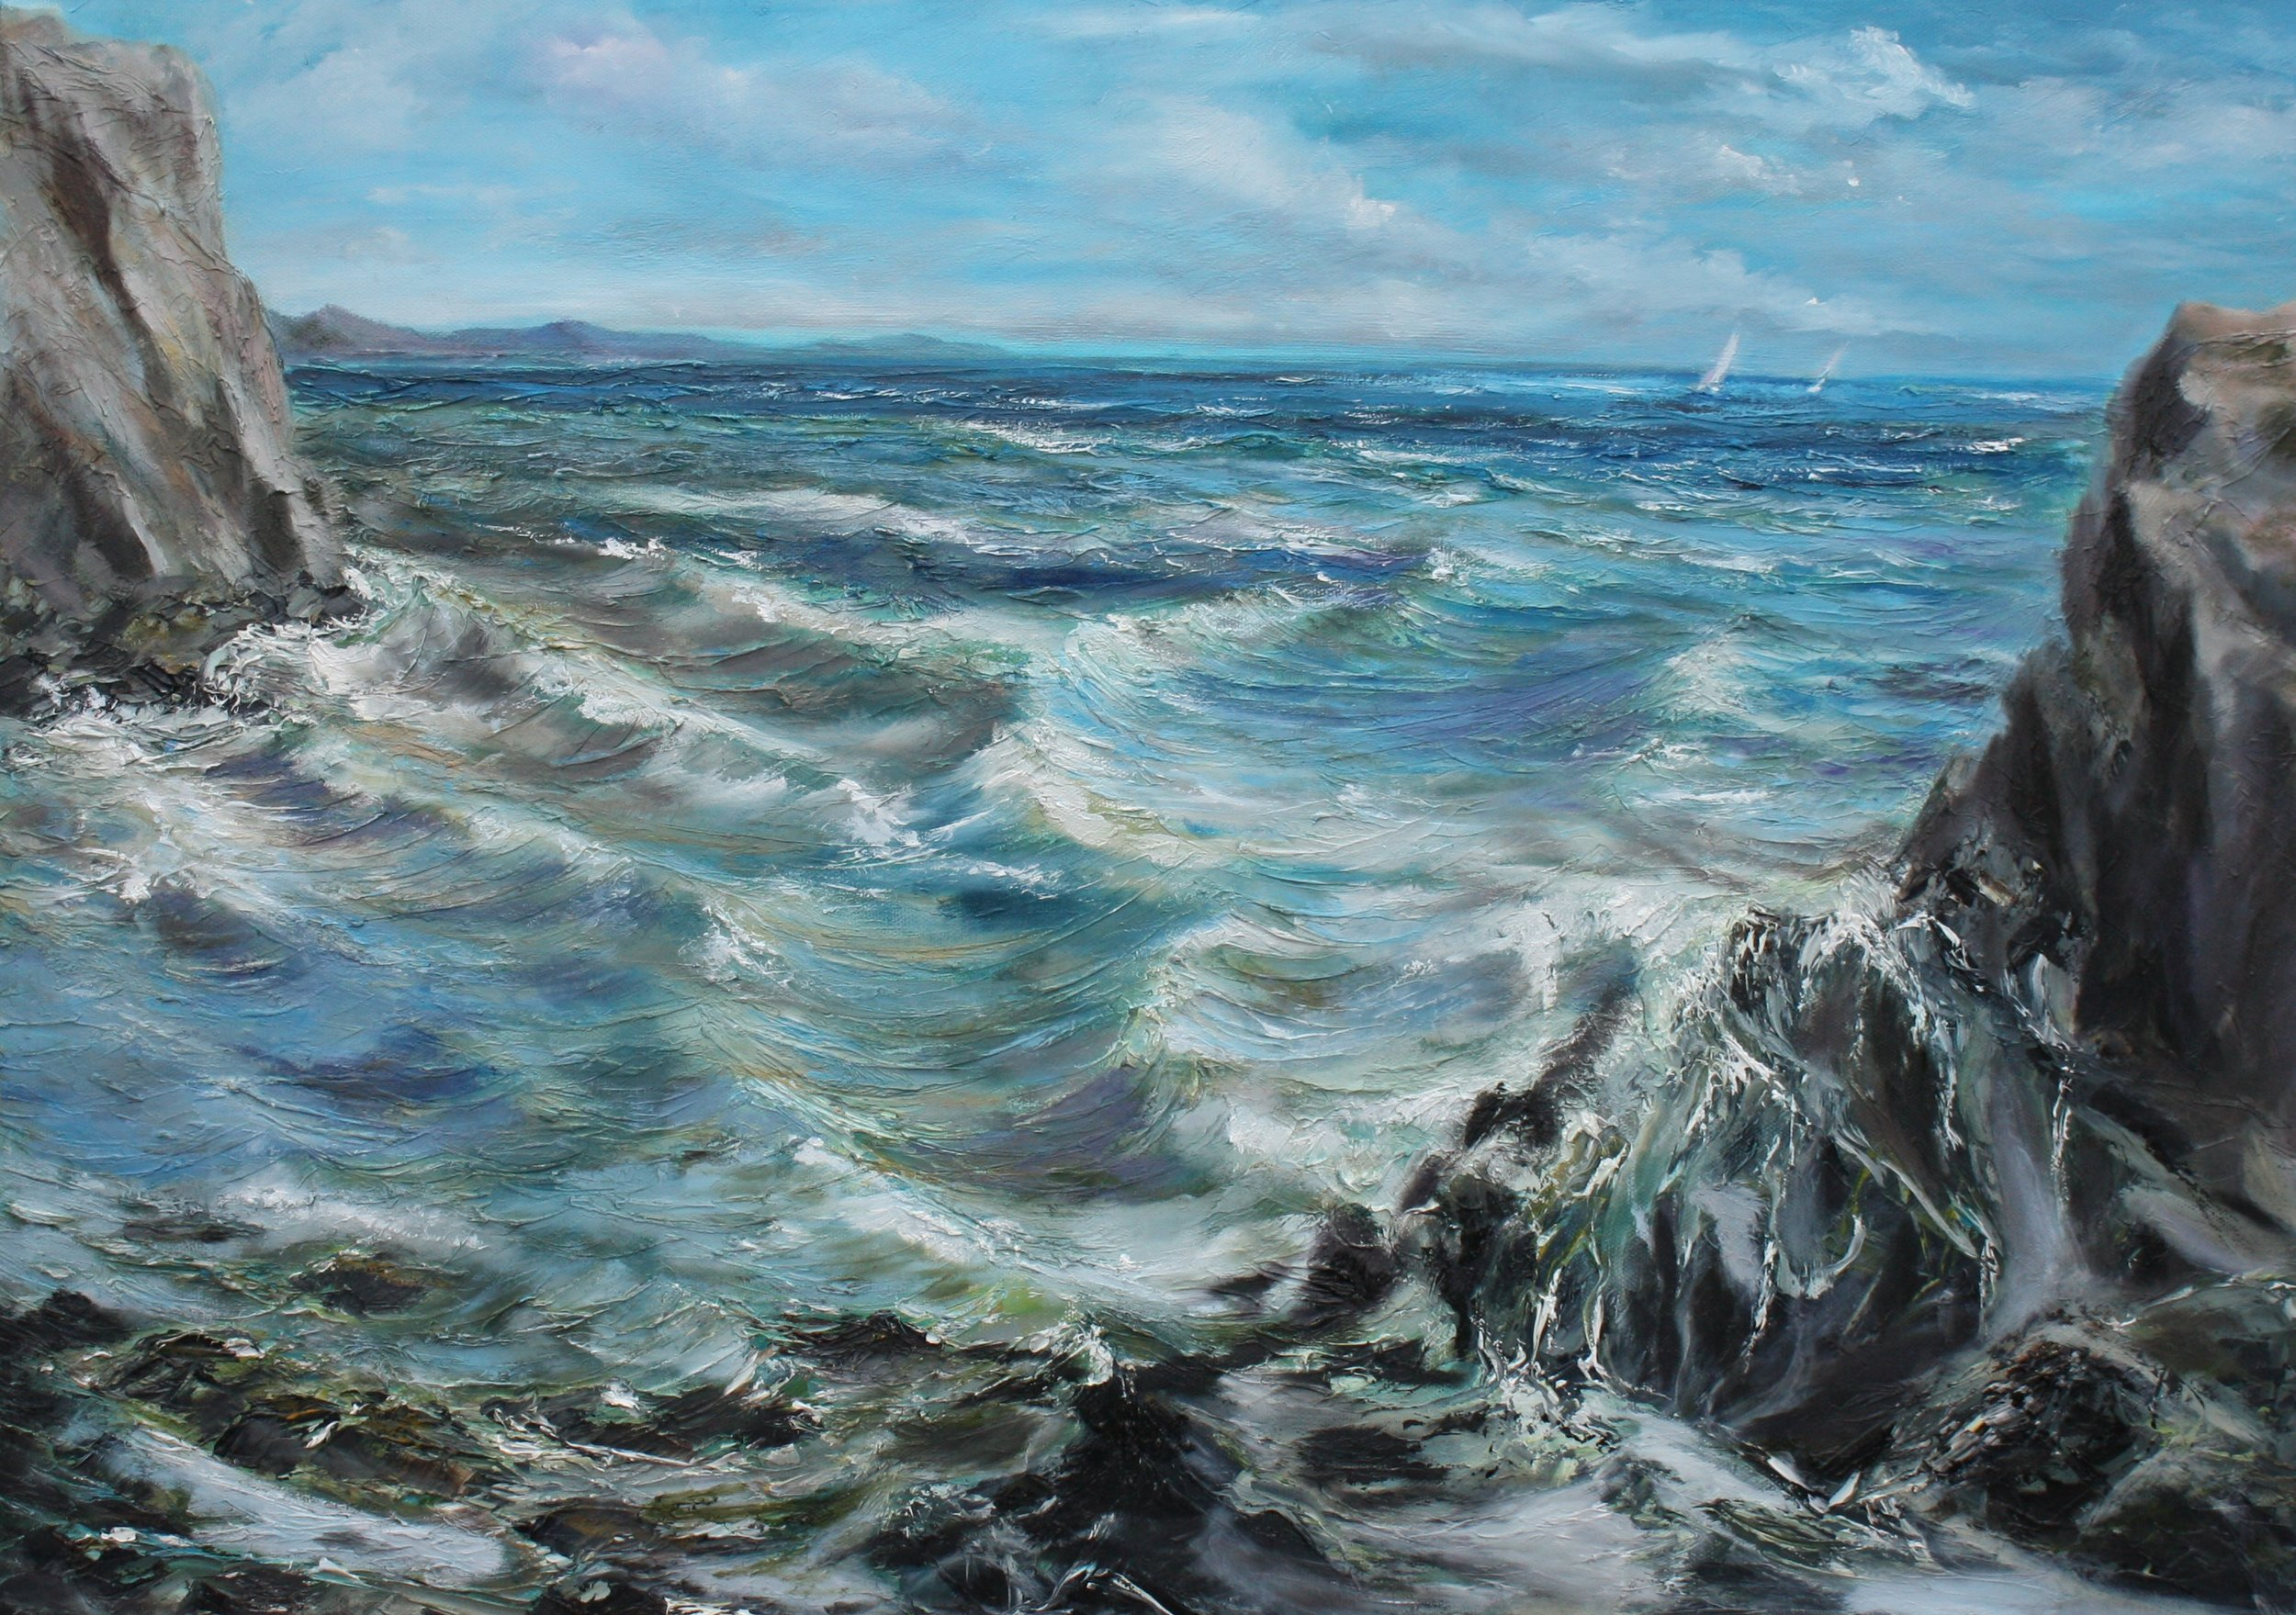 """Welcome to the art of Hazel Griffiths-Jones - Welcome to my world of art. I hope my paintings inspire, please you or magically transport you to a place of peace or distant memories. I want you to feel the wetness of the water, the warmth of the sun, the movement of the waves. My work reflects my joy of the Anglesey coastline, distant travels and the culturally rich history around me. Painting is a joy and a challenge. In 2017, a commission to produce a """" quirky"""" tribute to Chester, for Rosebridge in Chester city, led to a new love of painting horses,  with the painting of 'Deva Leader', and the race through the city itself. Onward and upward and hail to fresh challenges.I studied art at school but that was a lifetime ago. I'm generally self -taught, still learning something new every day. After a long career in mental health as a Consultant Psychologist, my focus has now shifted, however I still want my paintings to have a positive influence on the mental health of the viewer. Some things never change…If you would like to commission a painting for your personal or corporate needs then please get in touch using the contact form, on the menu option."""